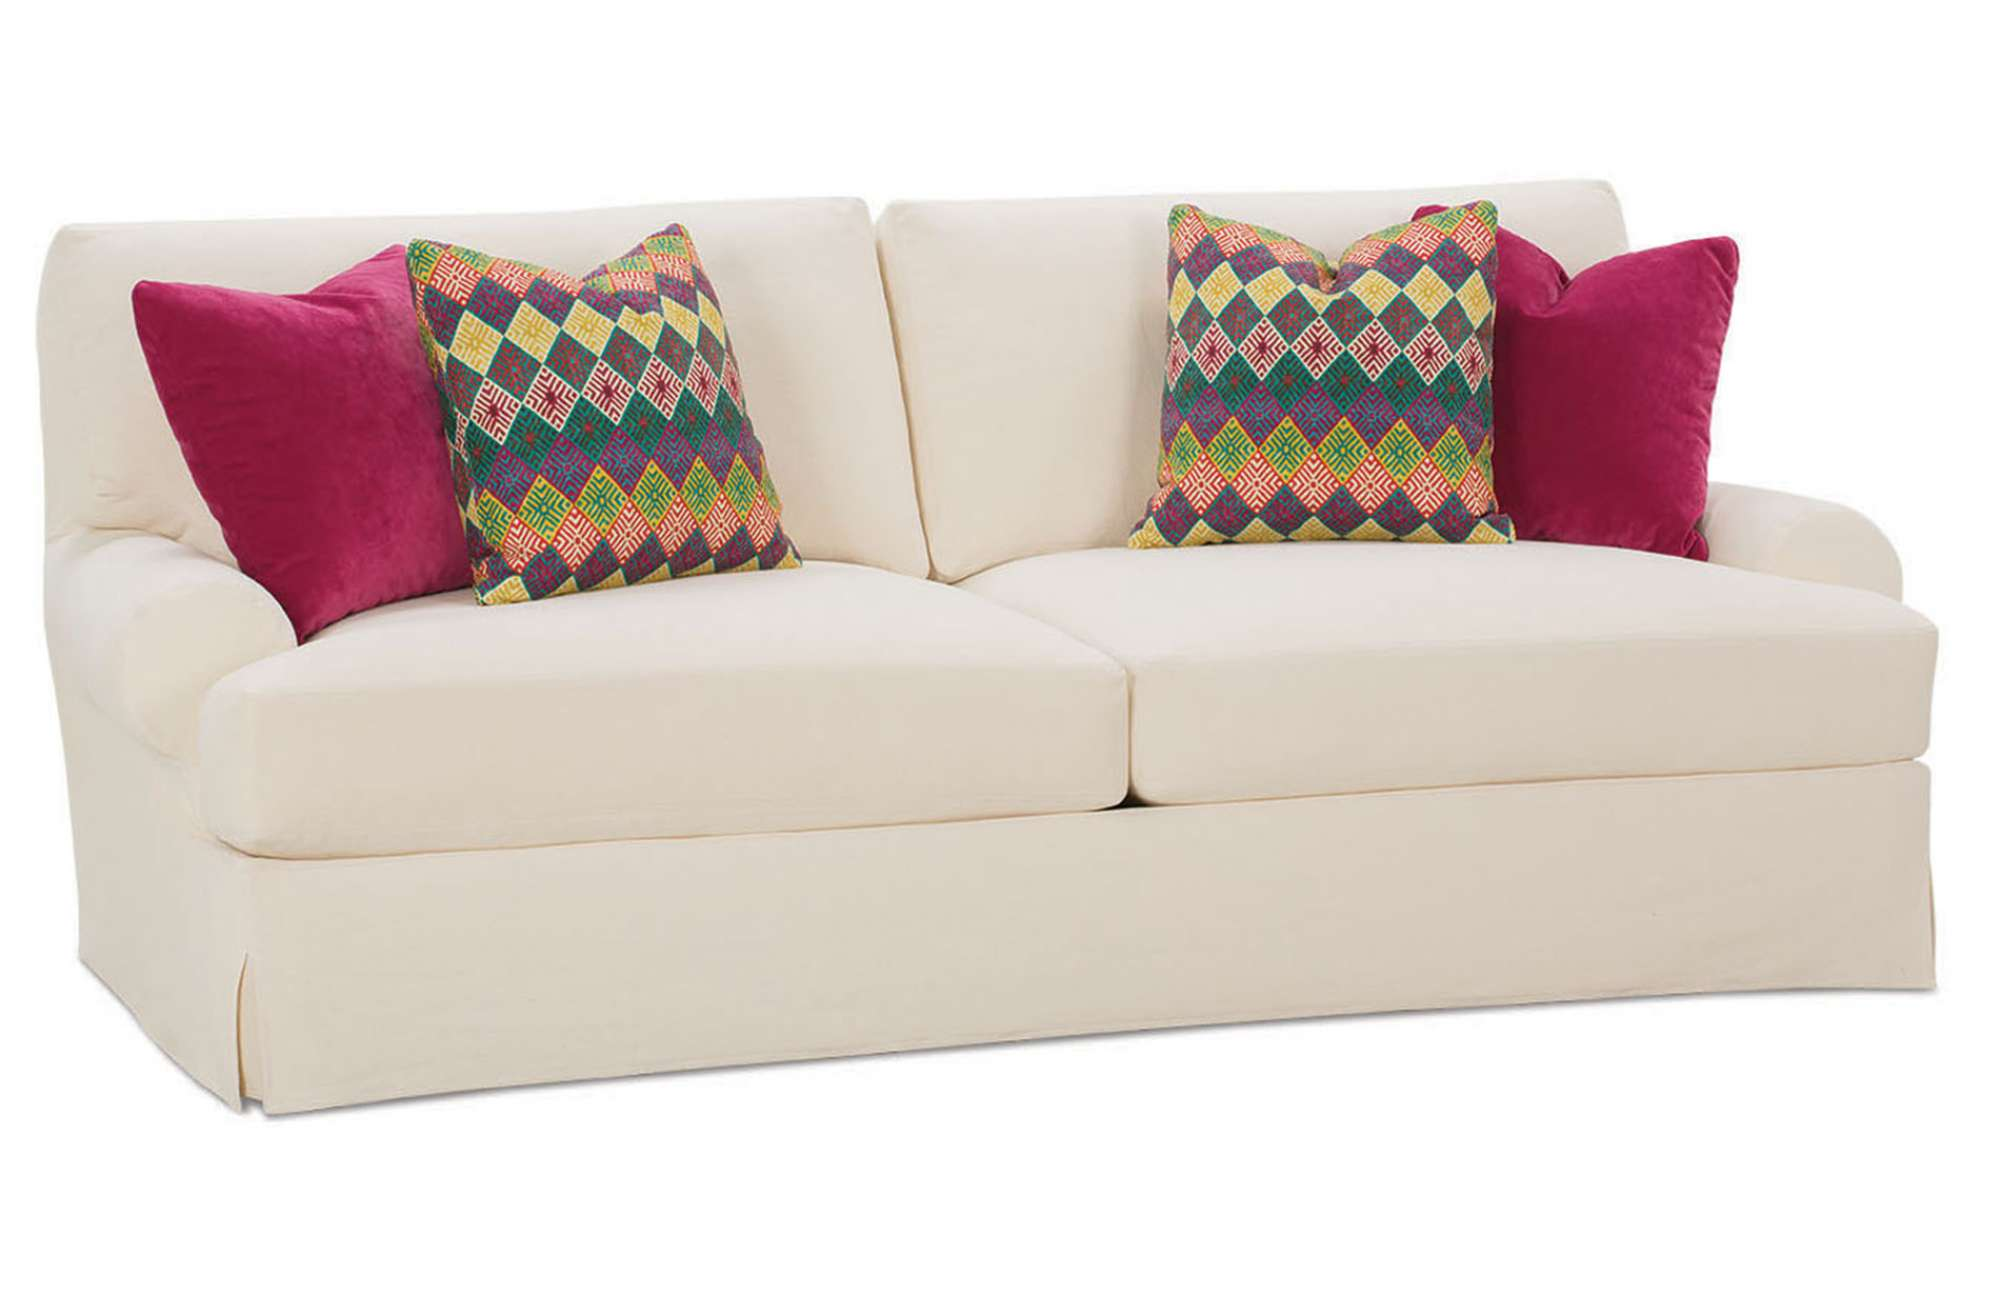 T Shaped Sofa Slipcovers Thesofa: loveseat cushion covers